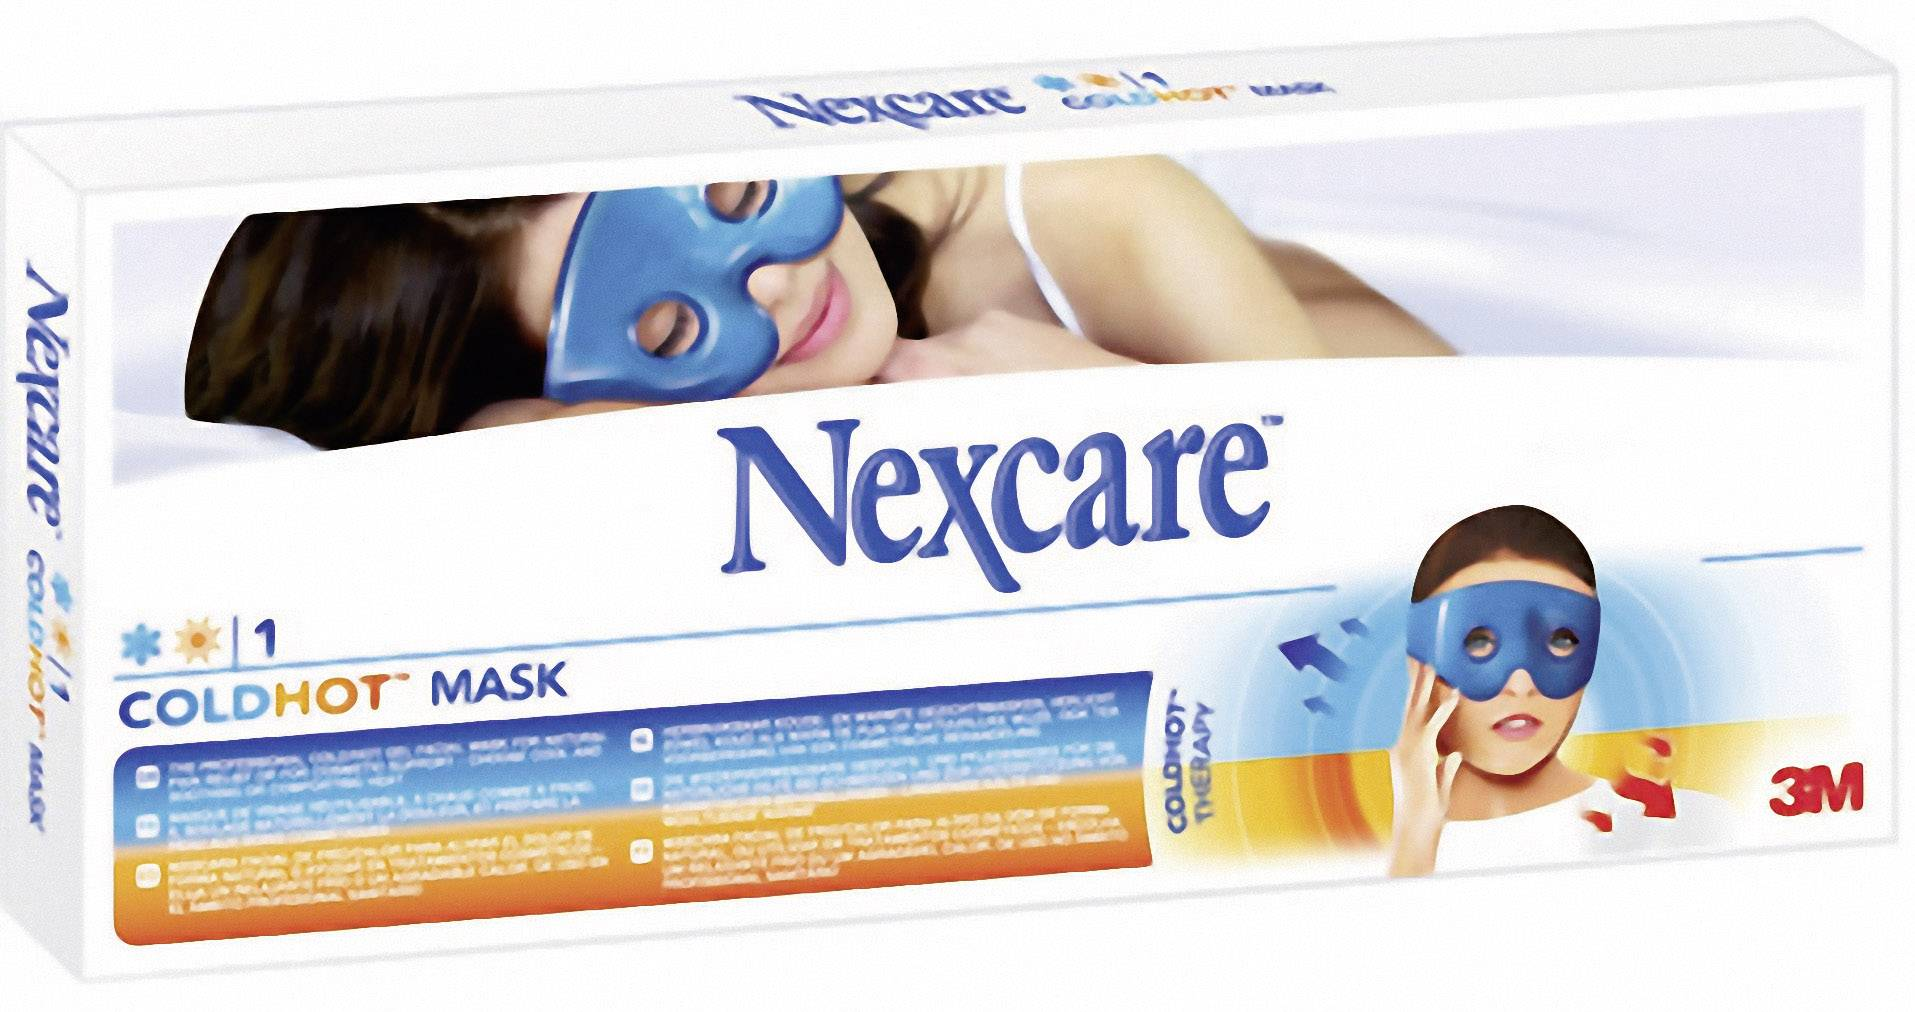 3m nexcare surgical mask